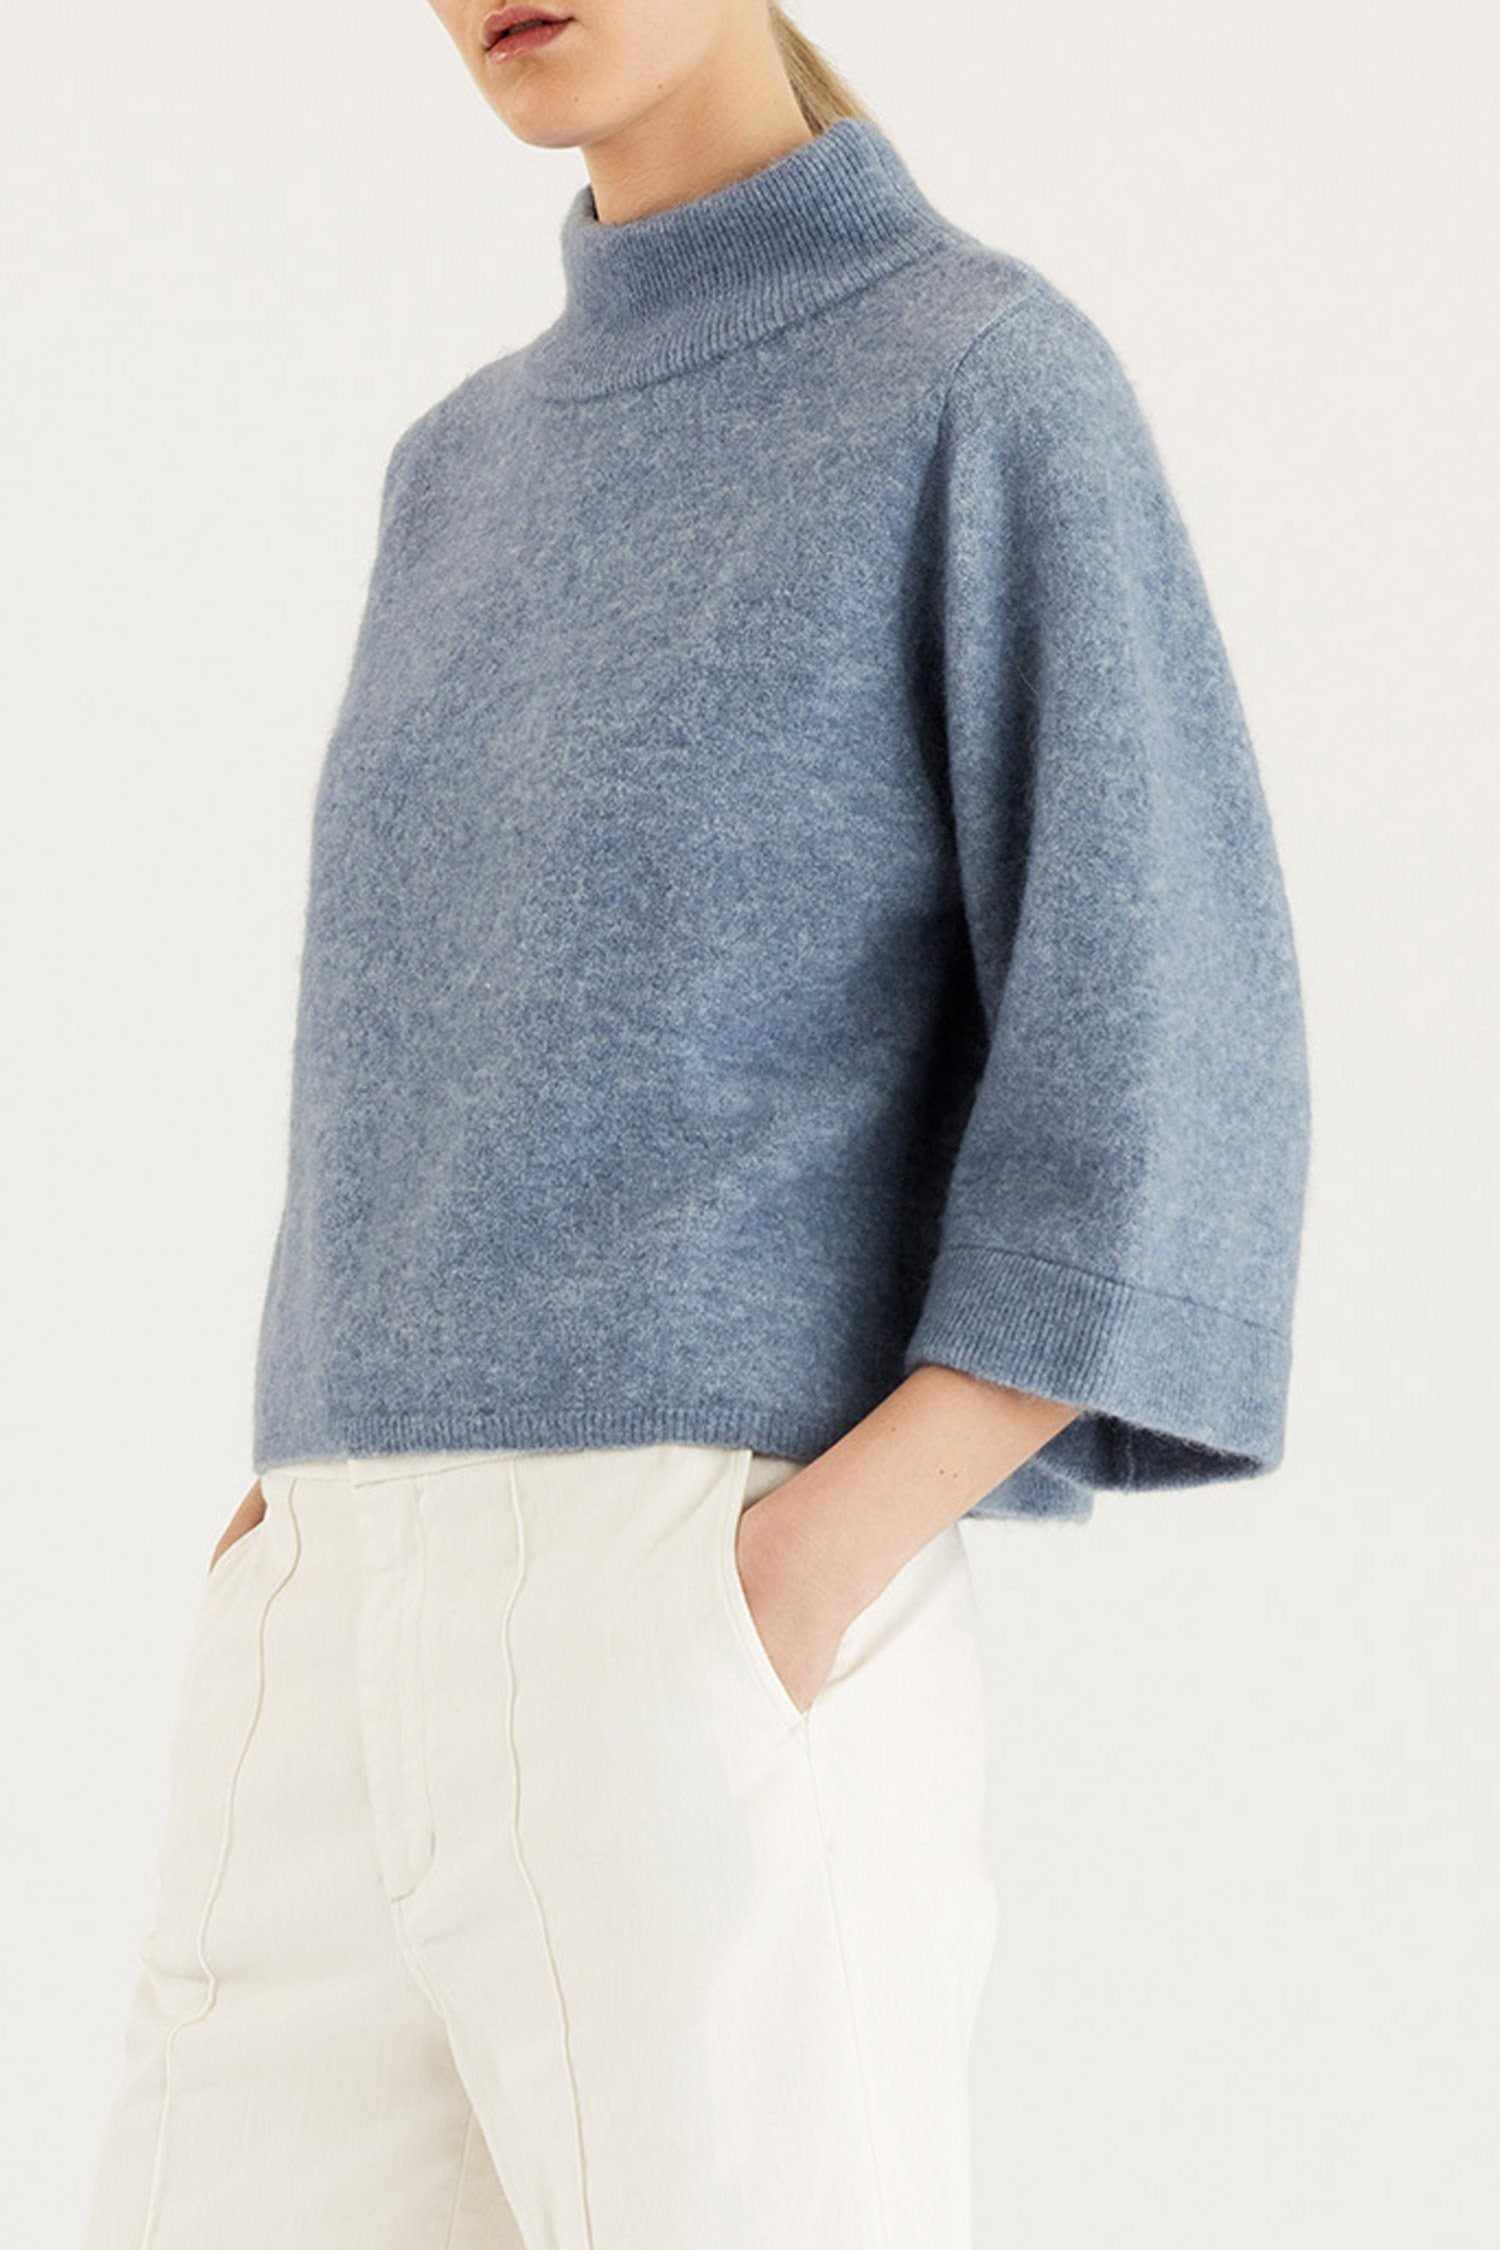 ELITA SWEATER - LIGHT BLUE Sweater Stylein